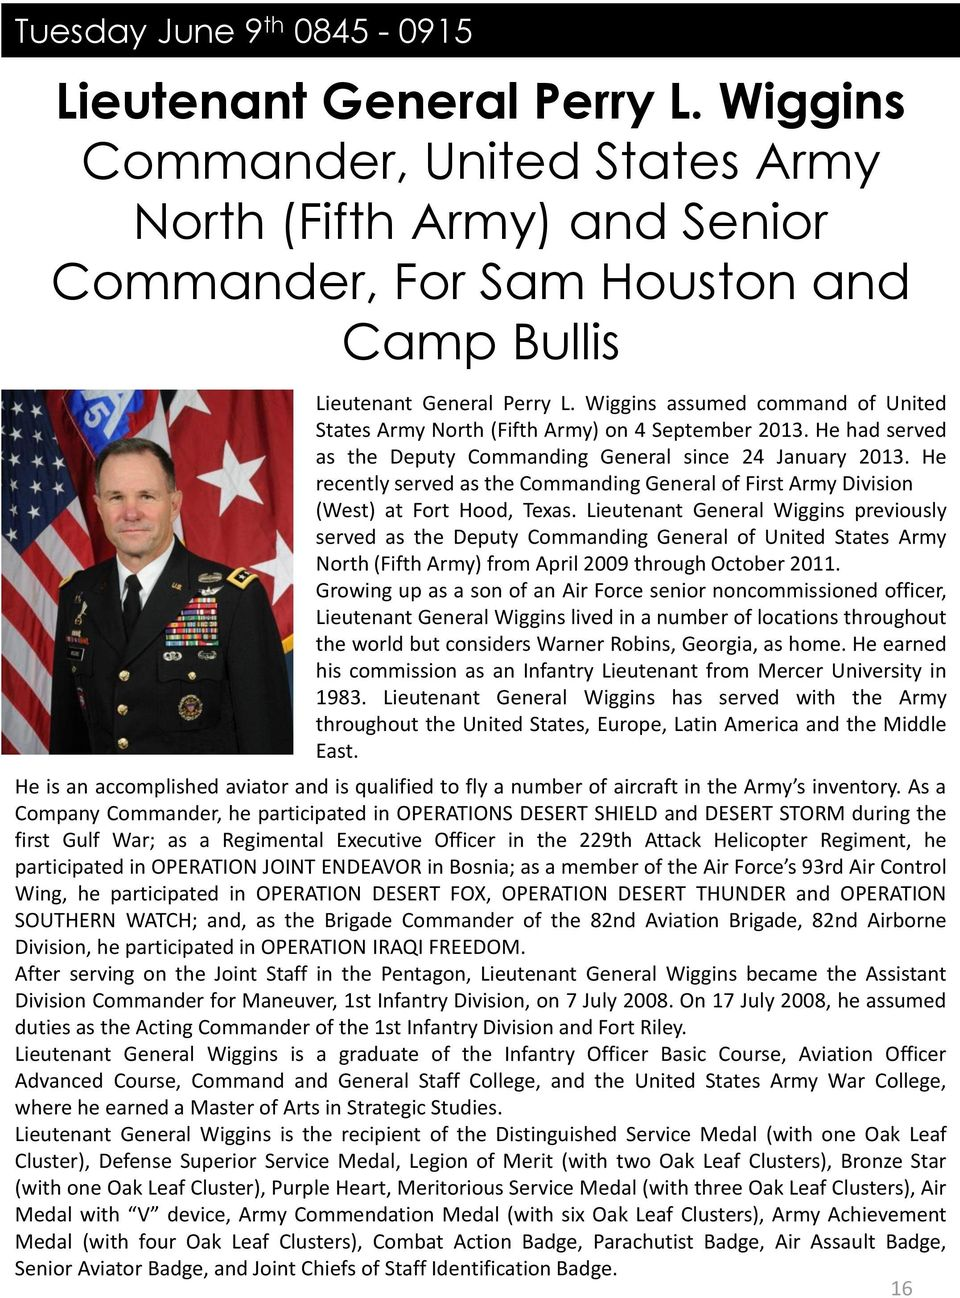 He recently served as the Commanding General of First Army Division (West) at Fort Hood, Texas.